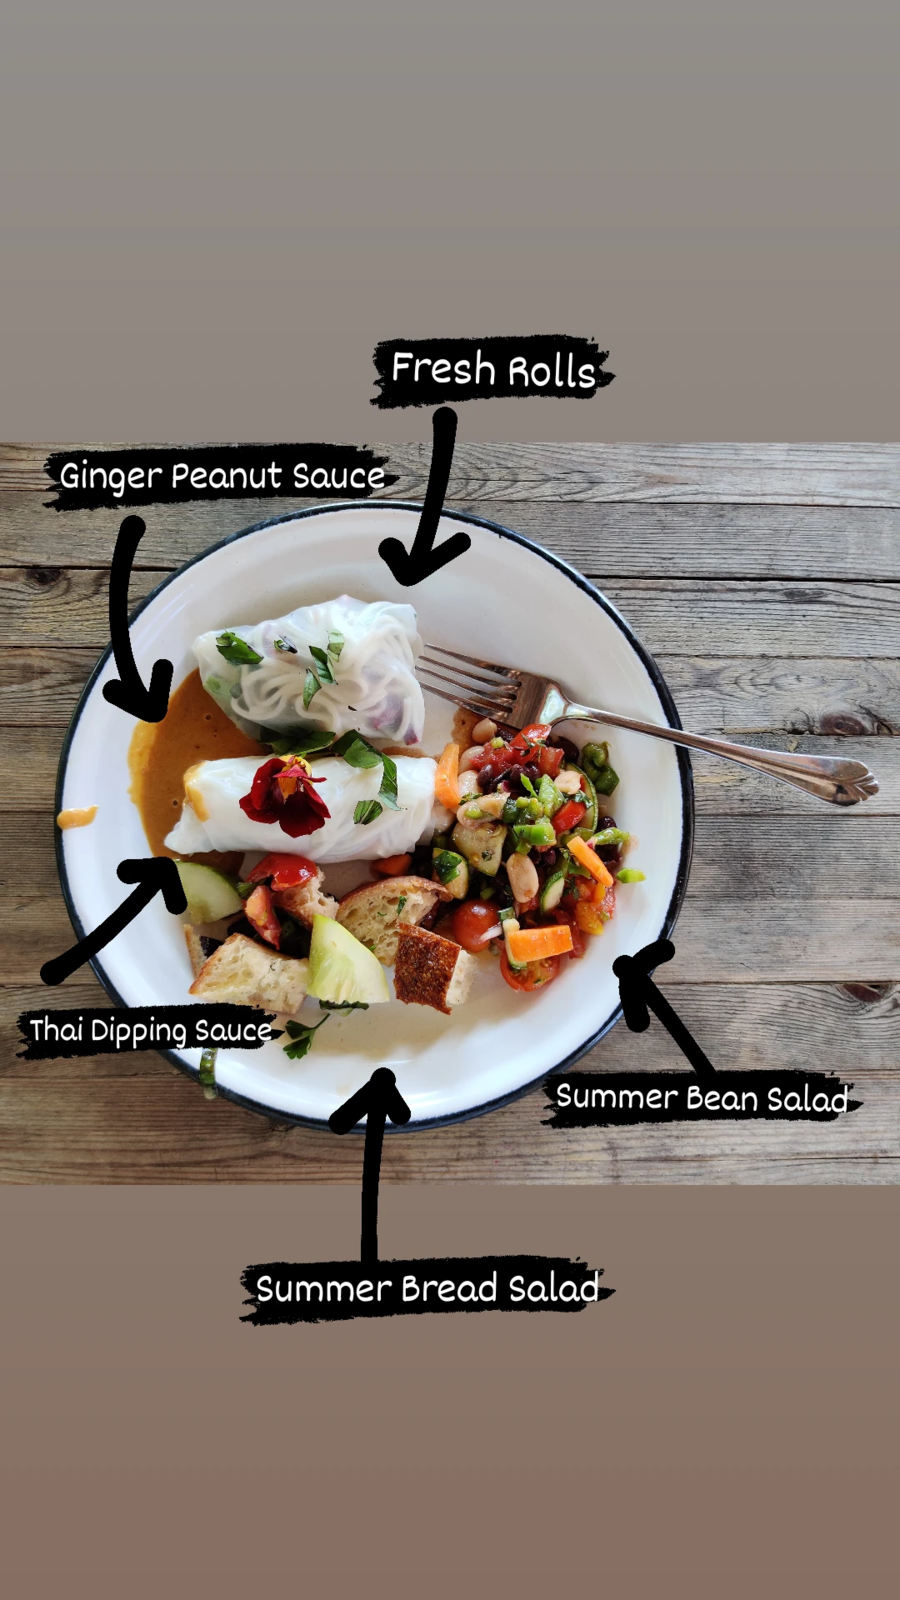 fresh rolls, dipping sauces, summer bread salad, and summer bean salad on a plate with labels.